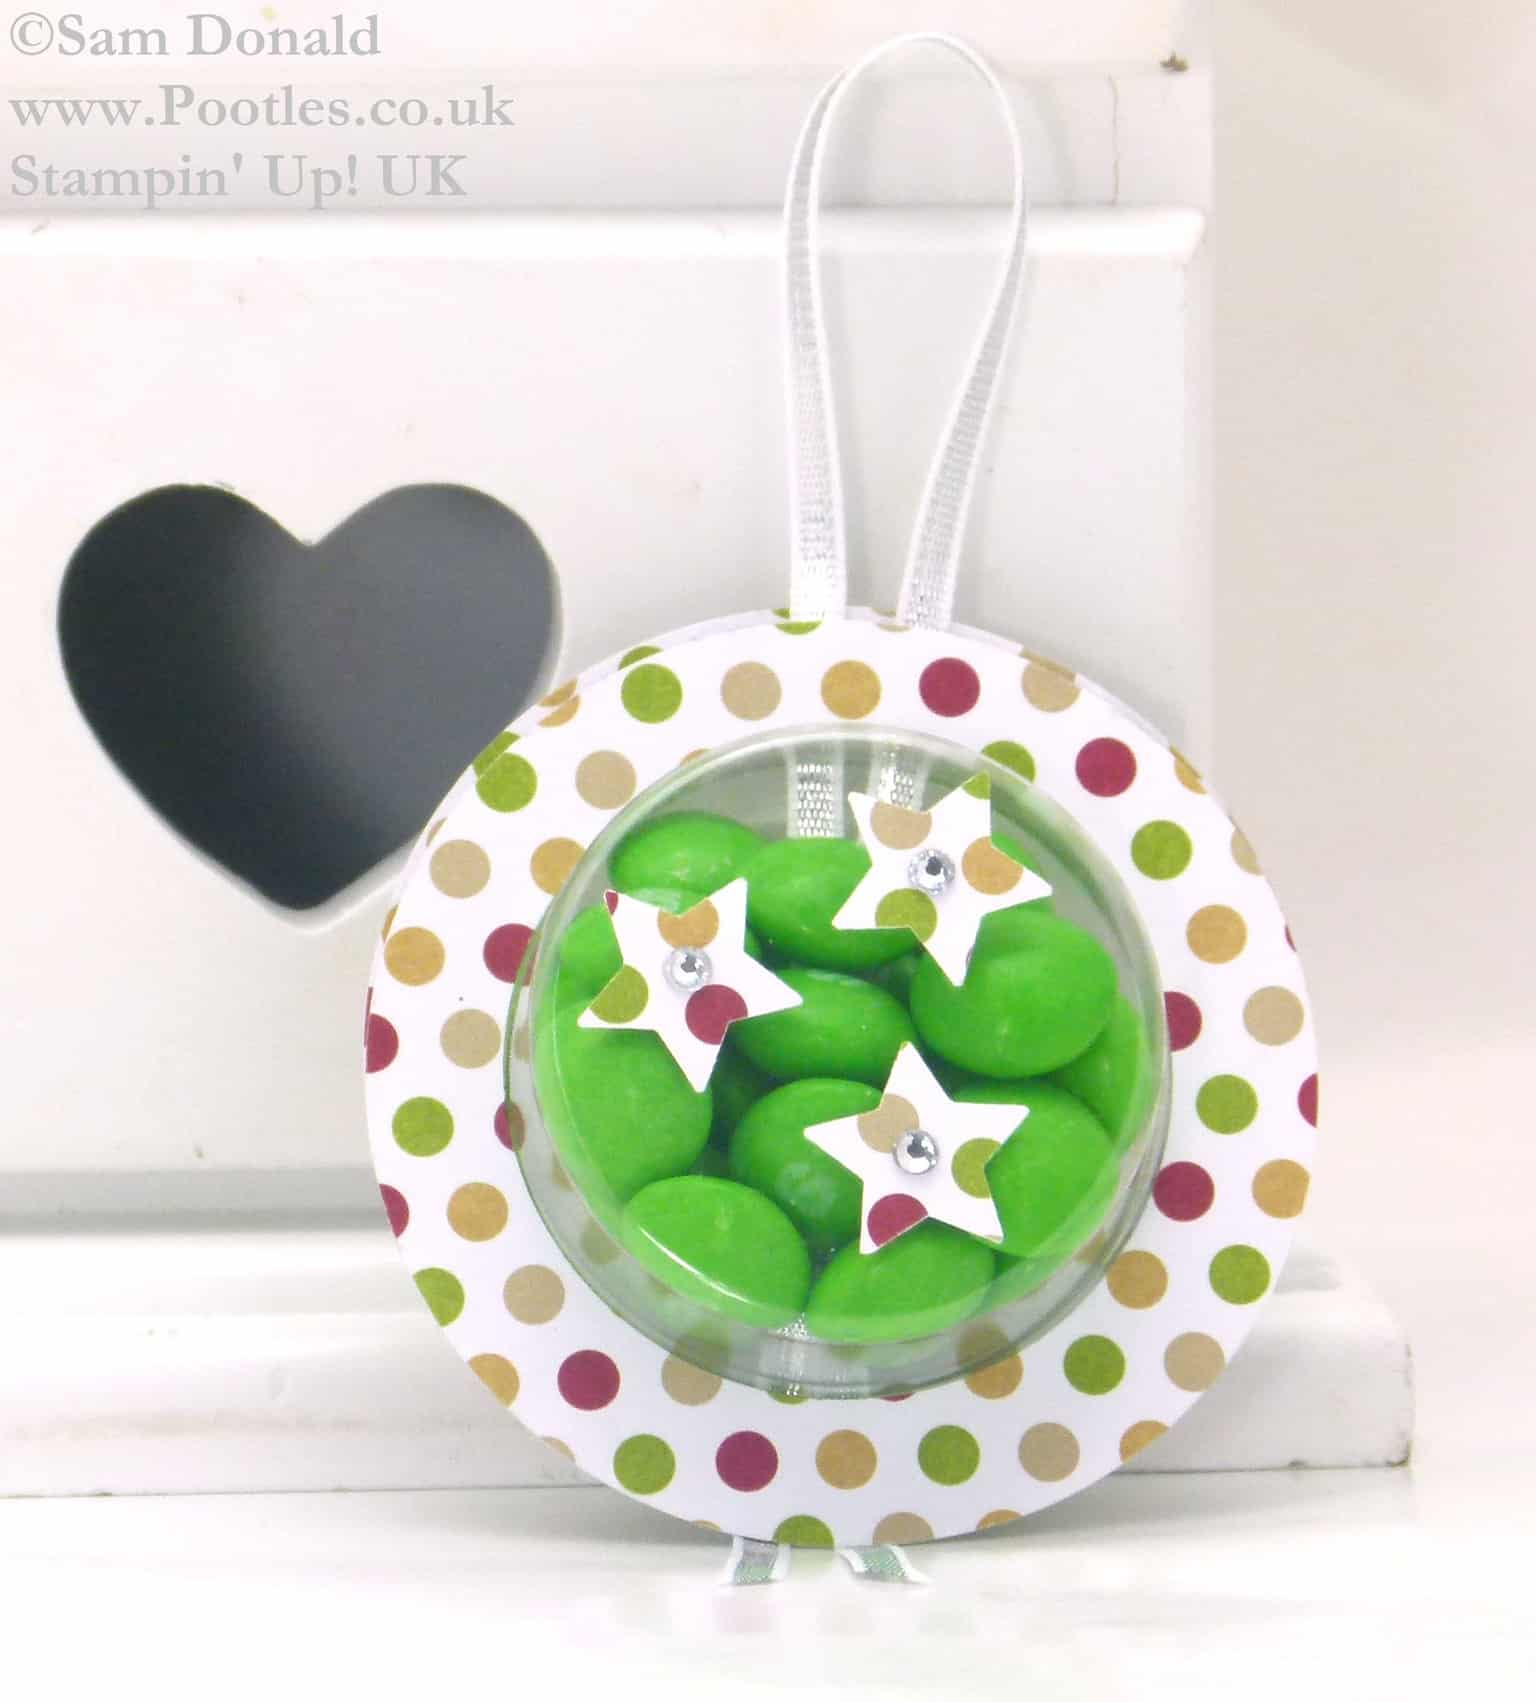 POOTLES Stampin Up UK ADVENT COUNTDOWN Sweetie Decorations Video Plus Bloopers..! 2